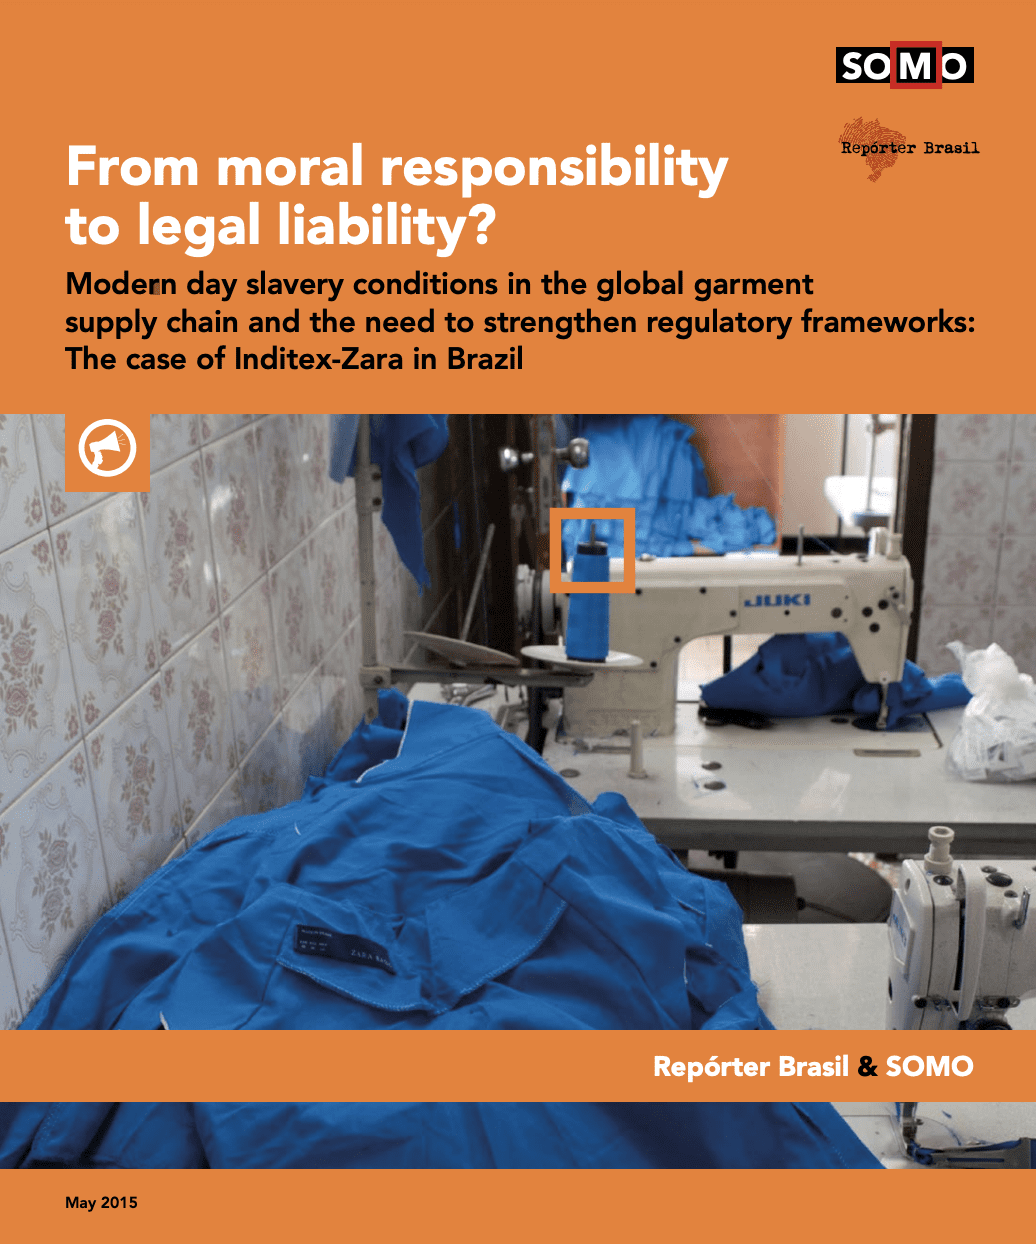 From moral responsibility to legal liability? Modern day slavery conditions in the global garment supply chain and the need to strengthen regulatory frameworks: The case of Inditex-Zara in Brazil